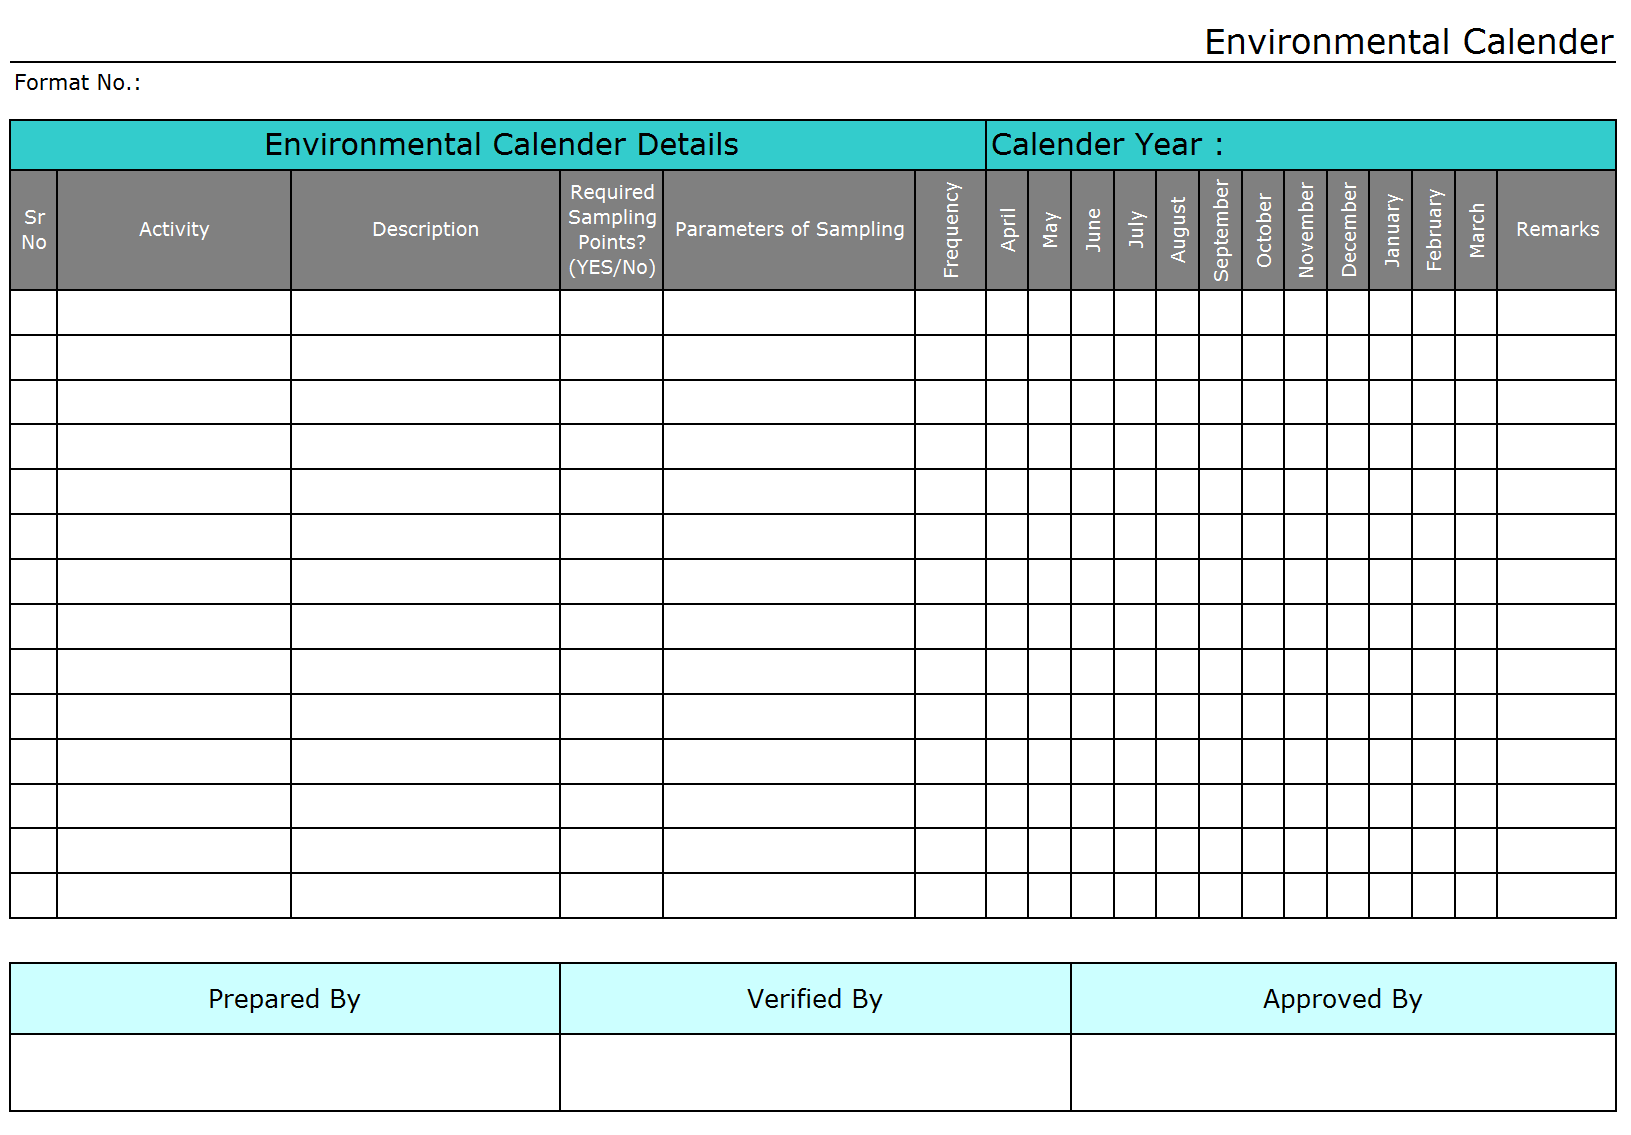 Calendar Organization Rules : Environmental calendar